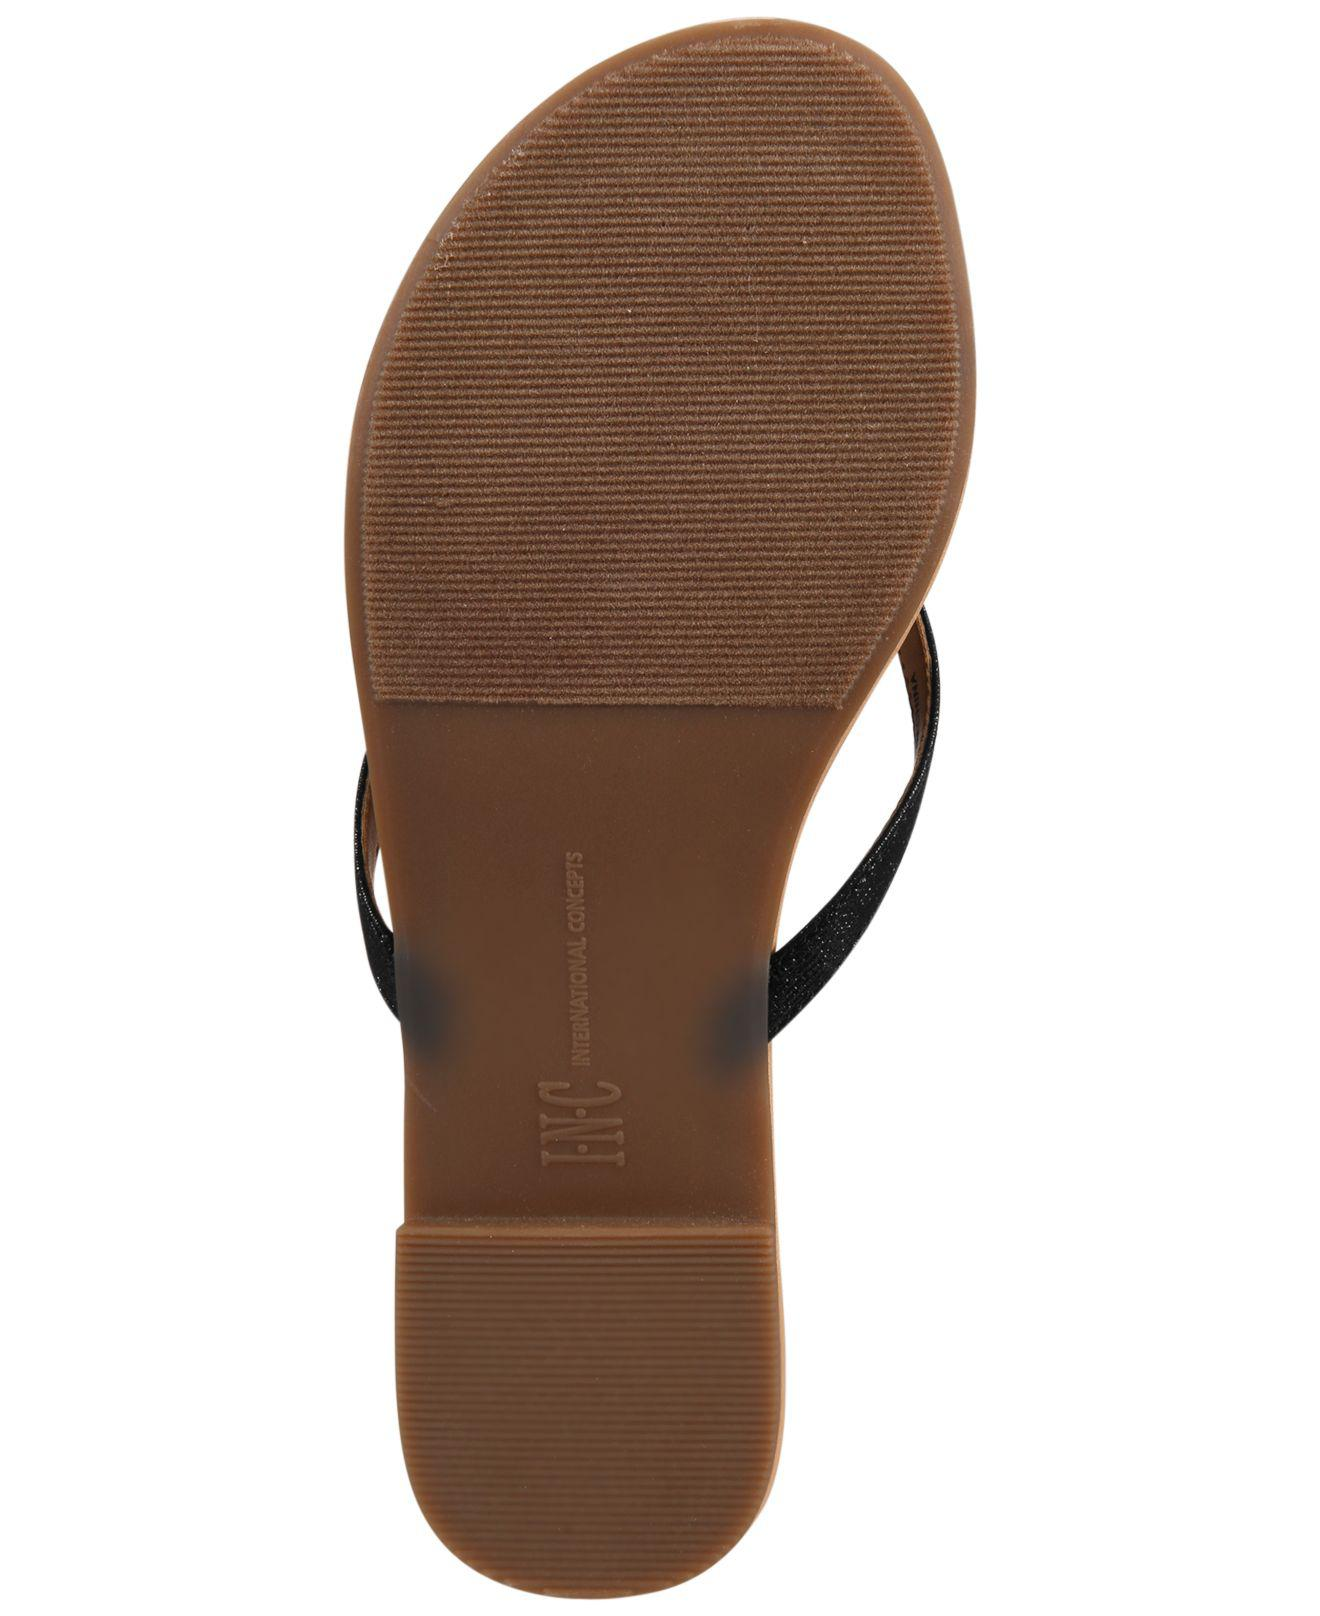 62f00290c142bf Lyst - INC International Concepts Women s Mabae Bow Flat Sandals in ...